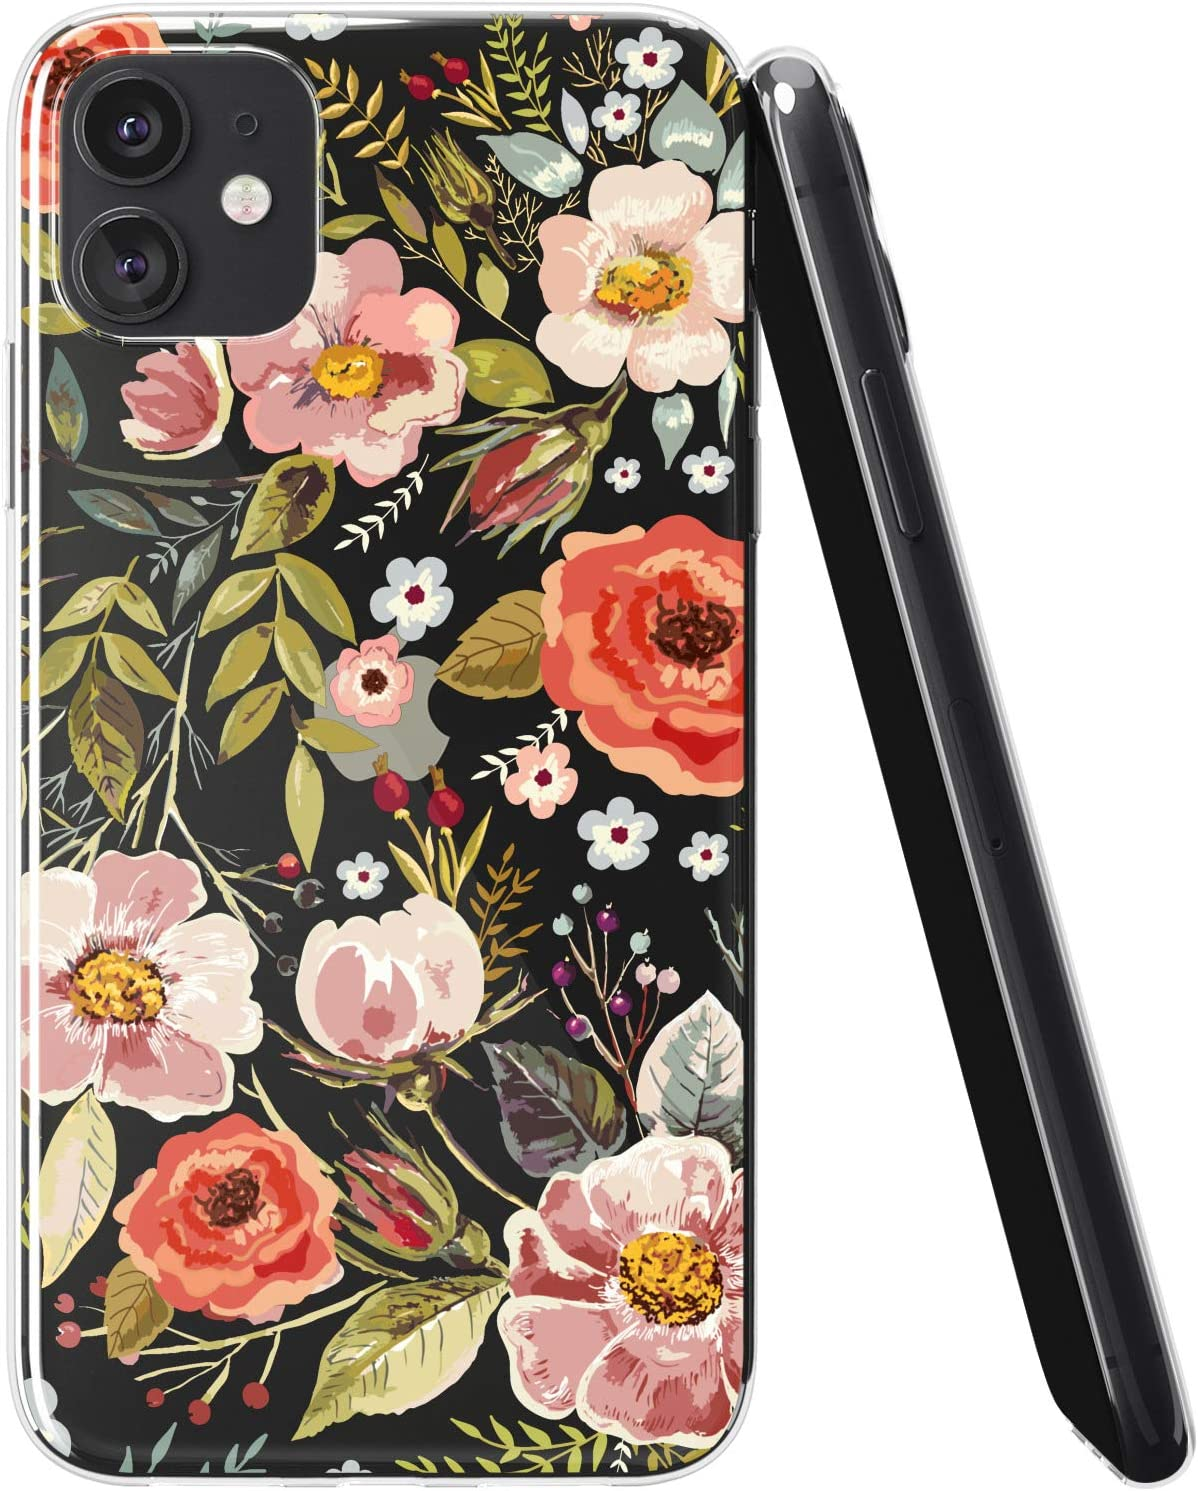 Vonna Phone Case Compatible with Apple iPhone 12 Pro Max 12 Mini 12 Pro 12 5G Pattern Floral Flexible Art Poppy Roses Cover Blossom Herb Smooth Print Flower Design Slim fit Soft Wild a205